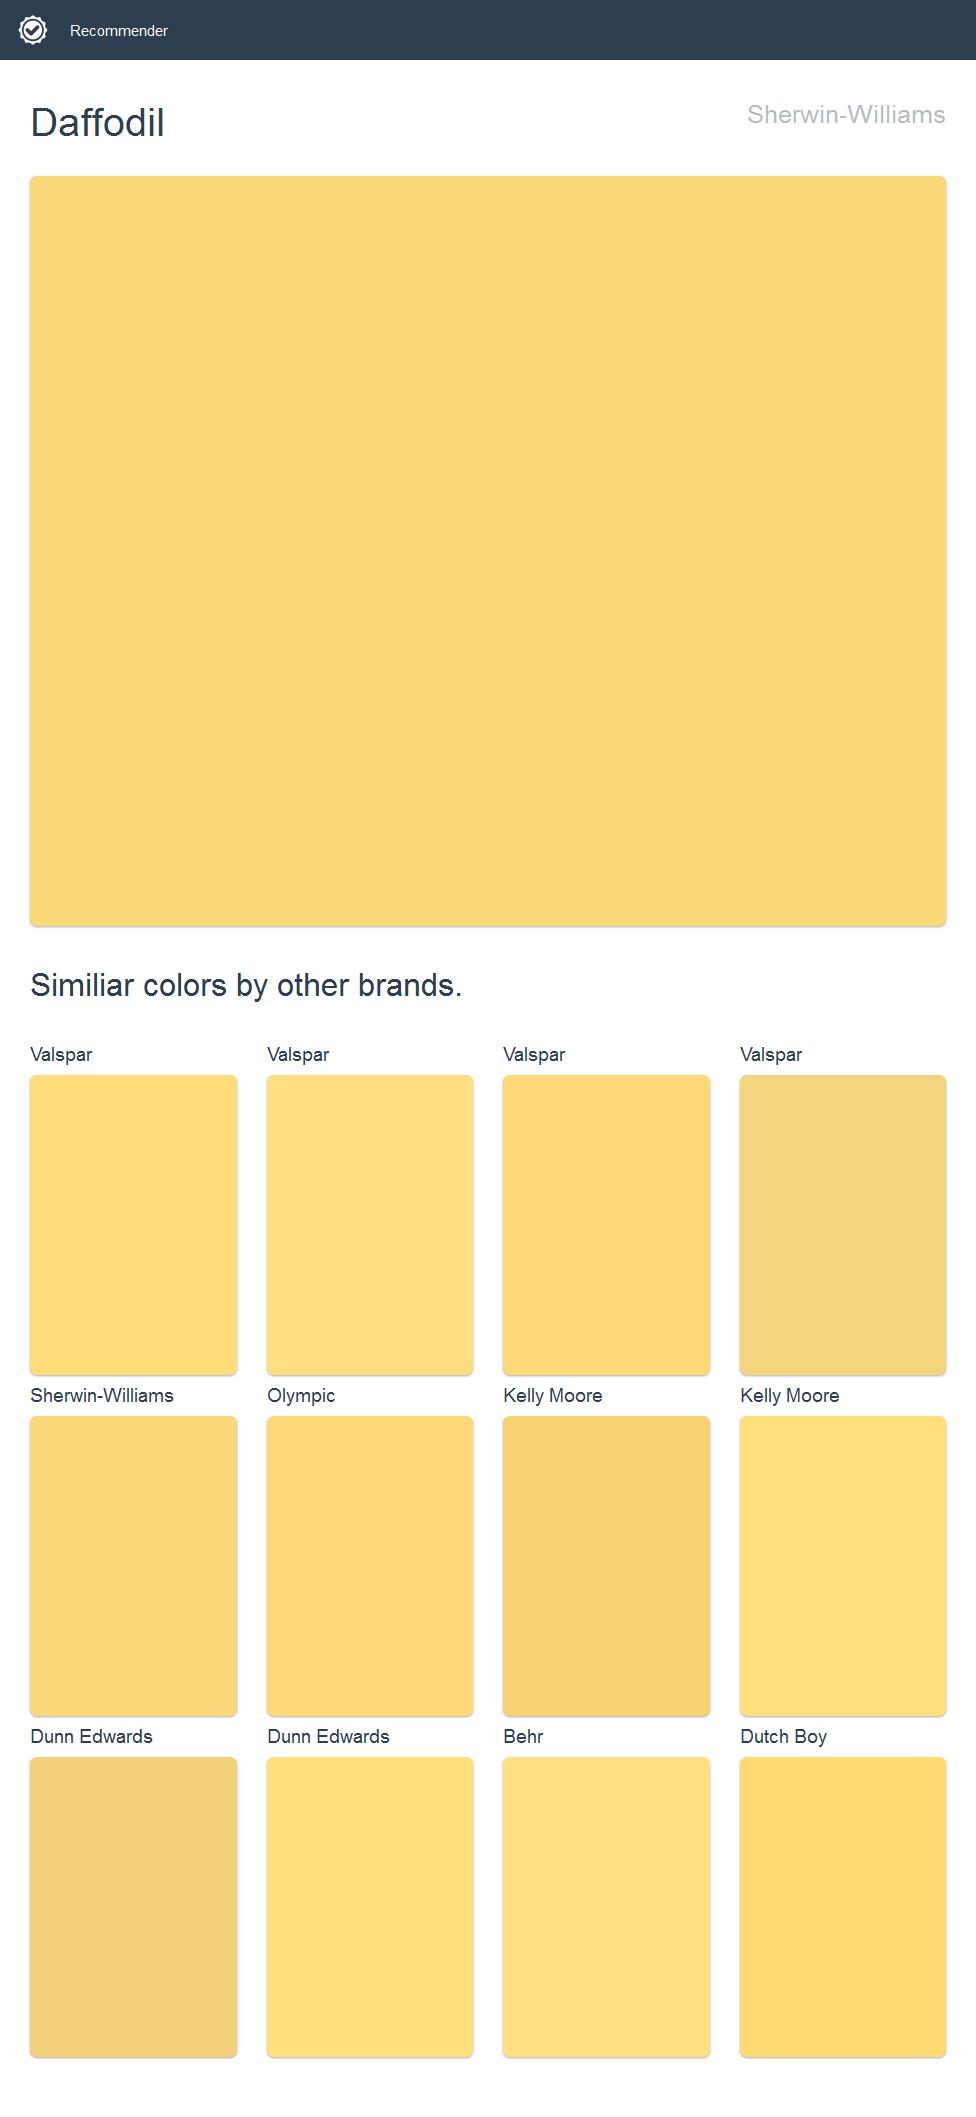 Daffodil, Sherwin Williams We Like Valspar, Third One In Top Row